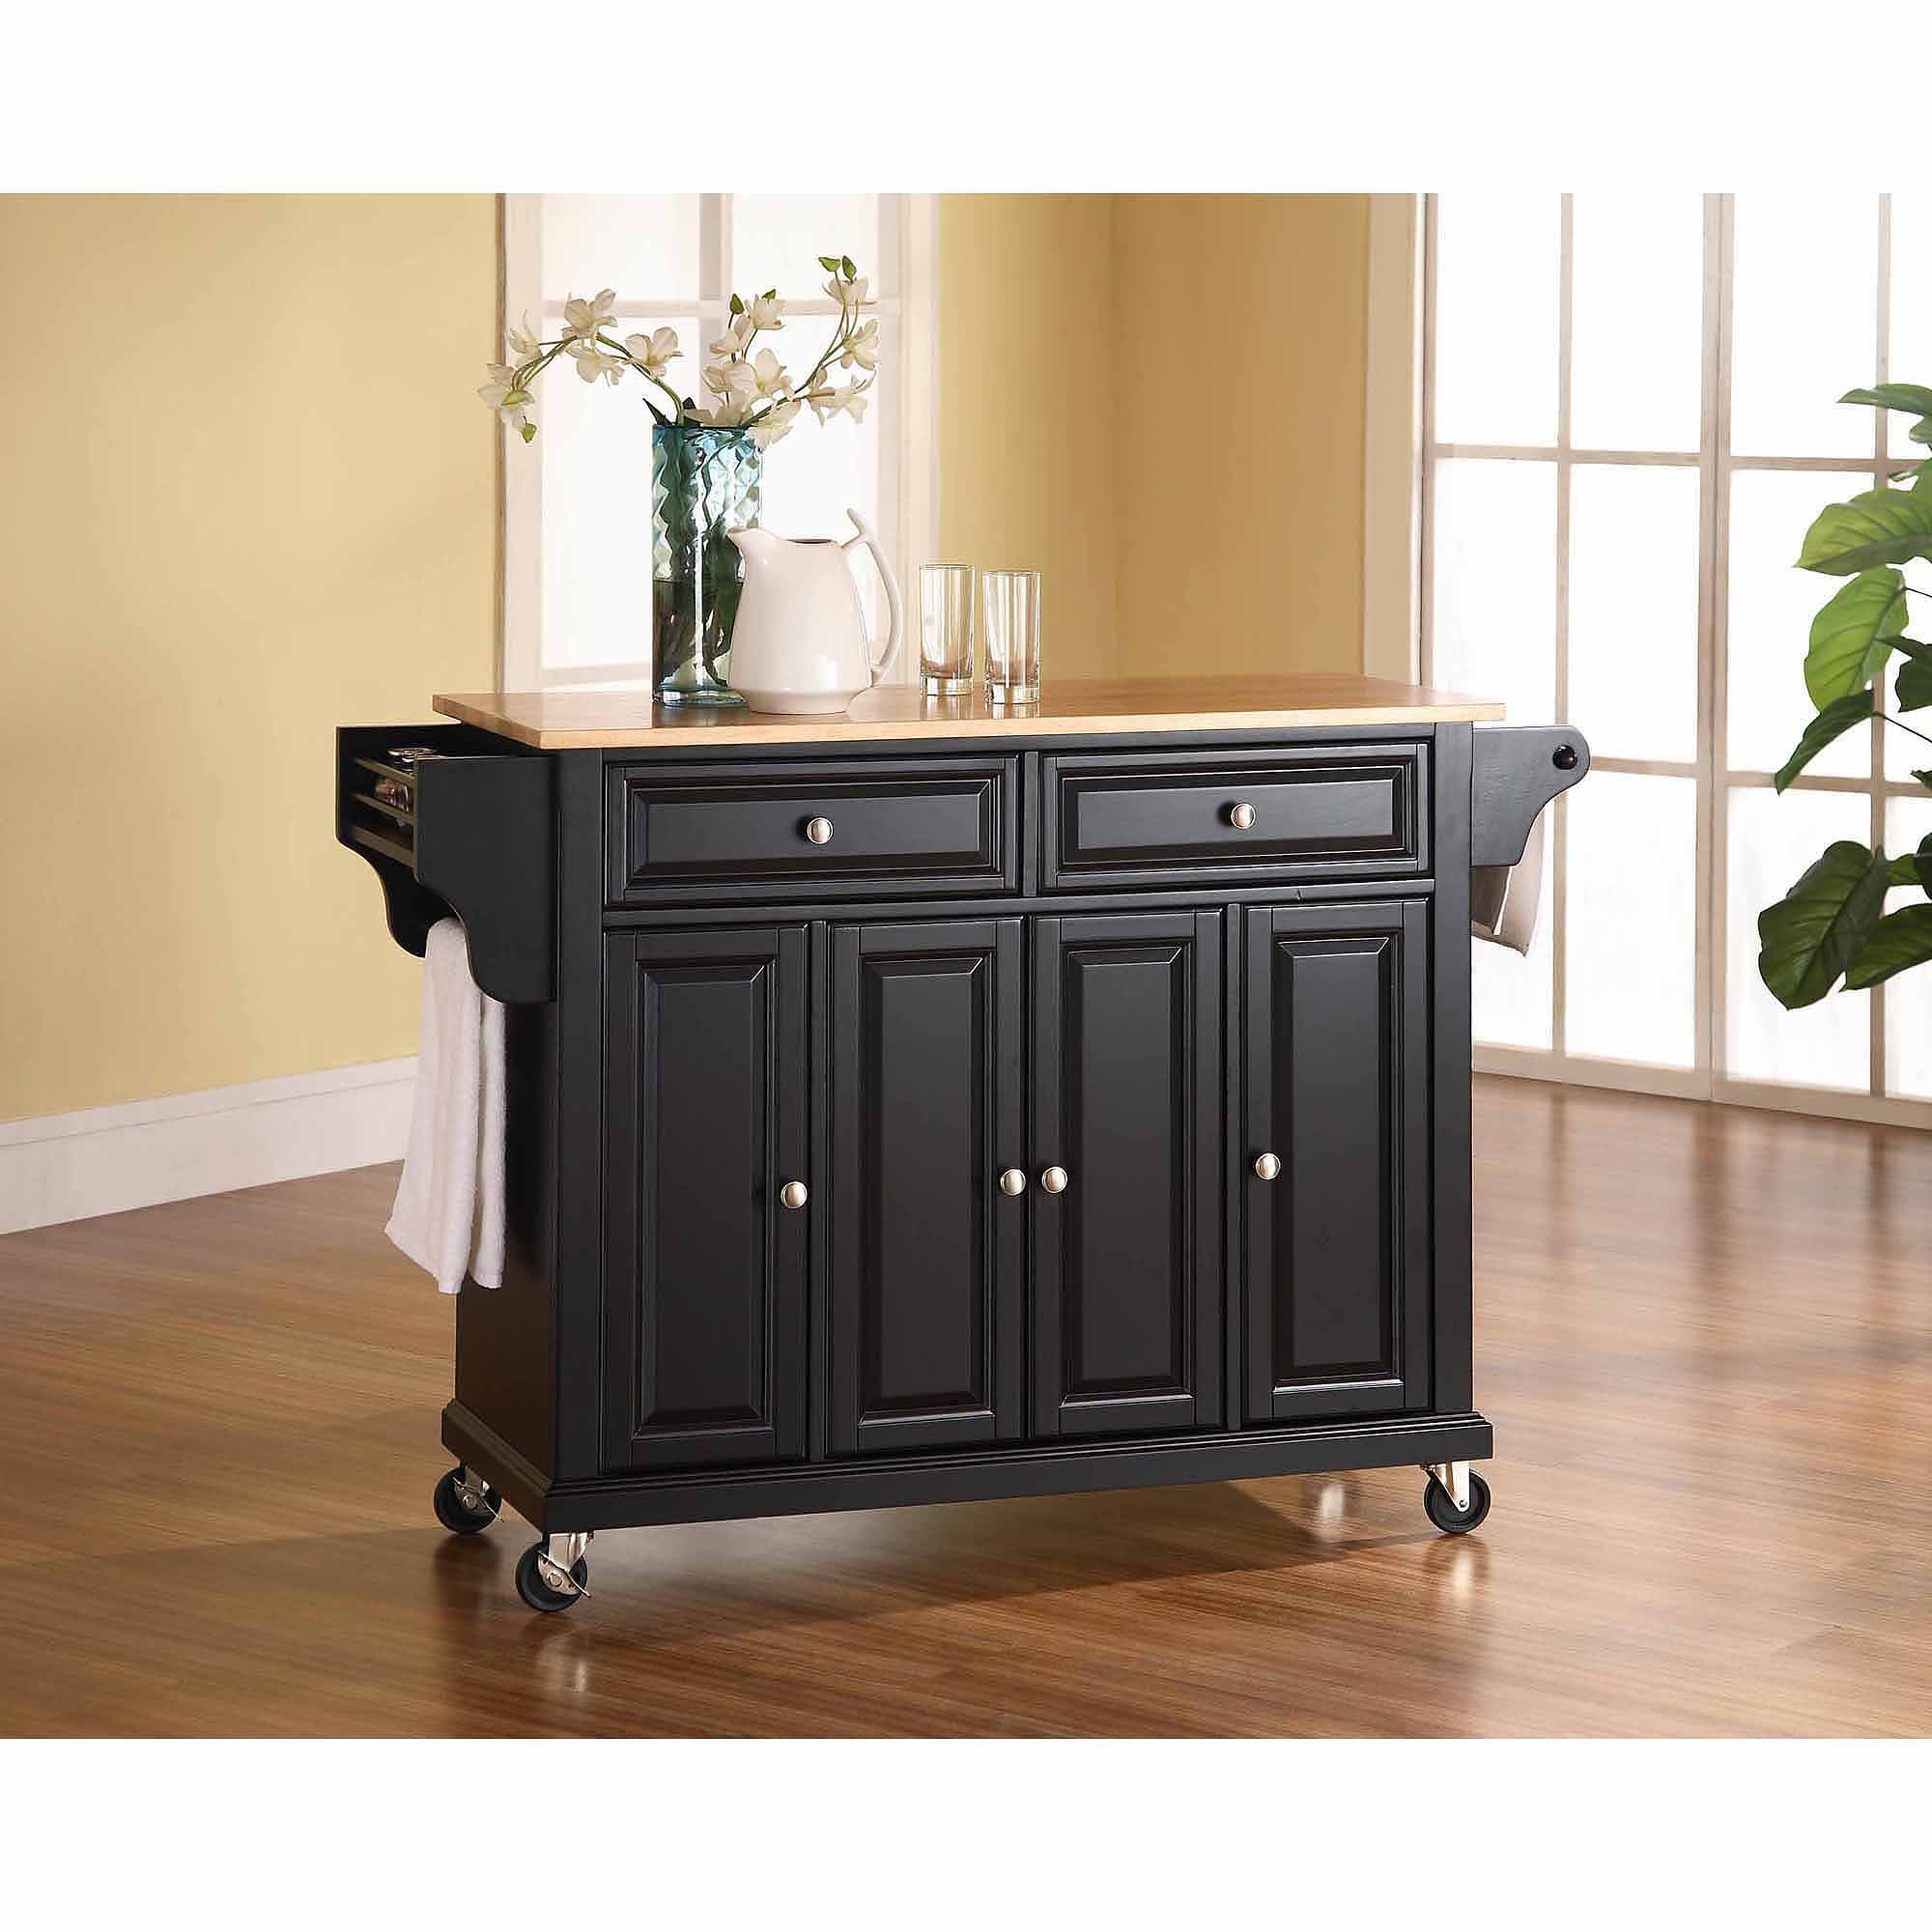 Crosley Furniture Natural Wood Top Kitchen Cart